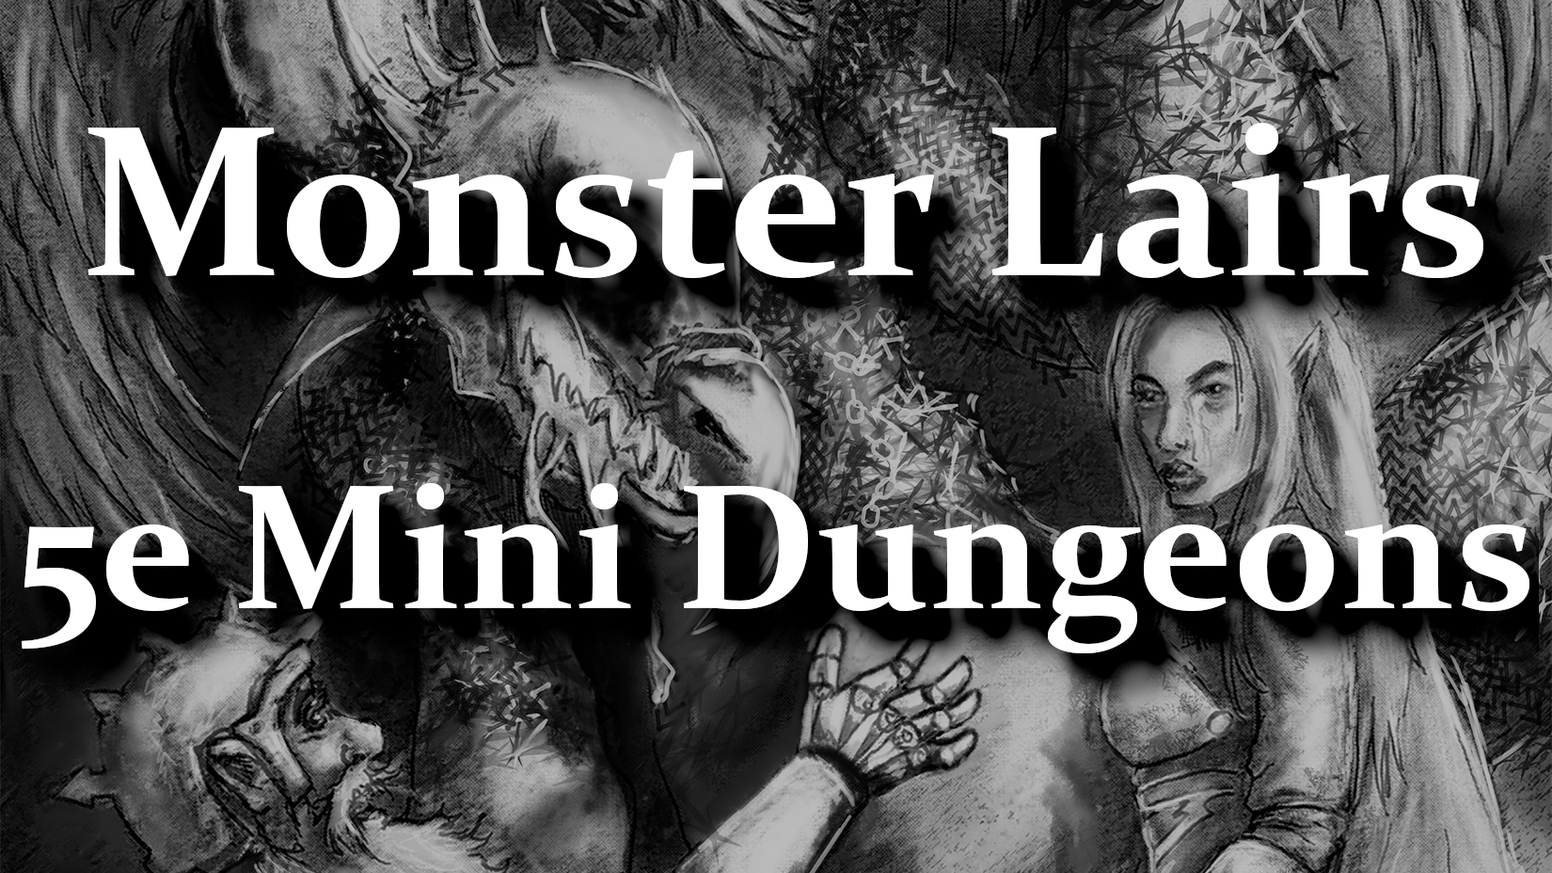 A book of mini dungeons for Dungeons and Dragons 5th edition. Each dungeon is themed after a different monster.